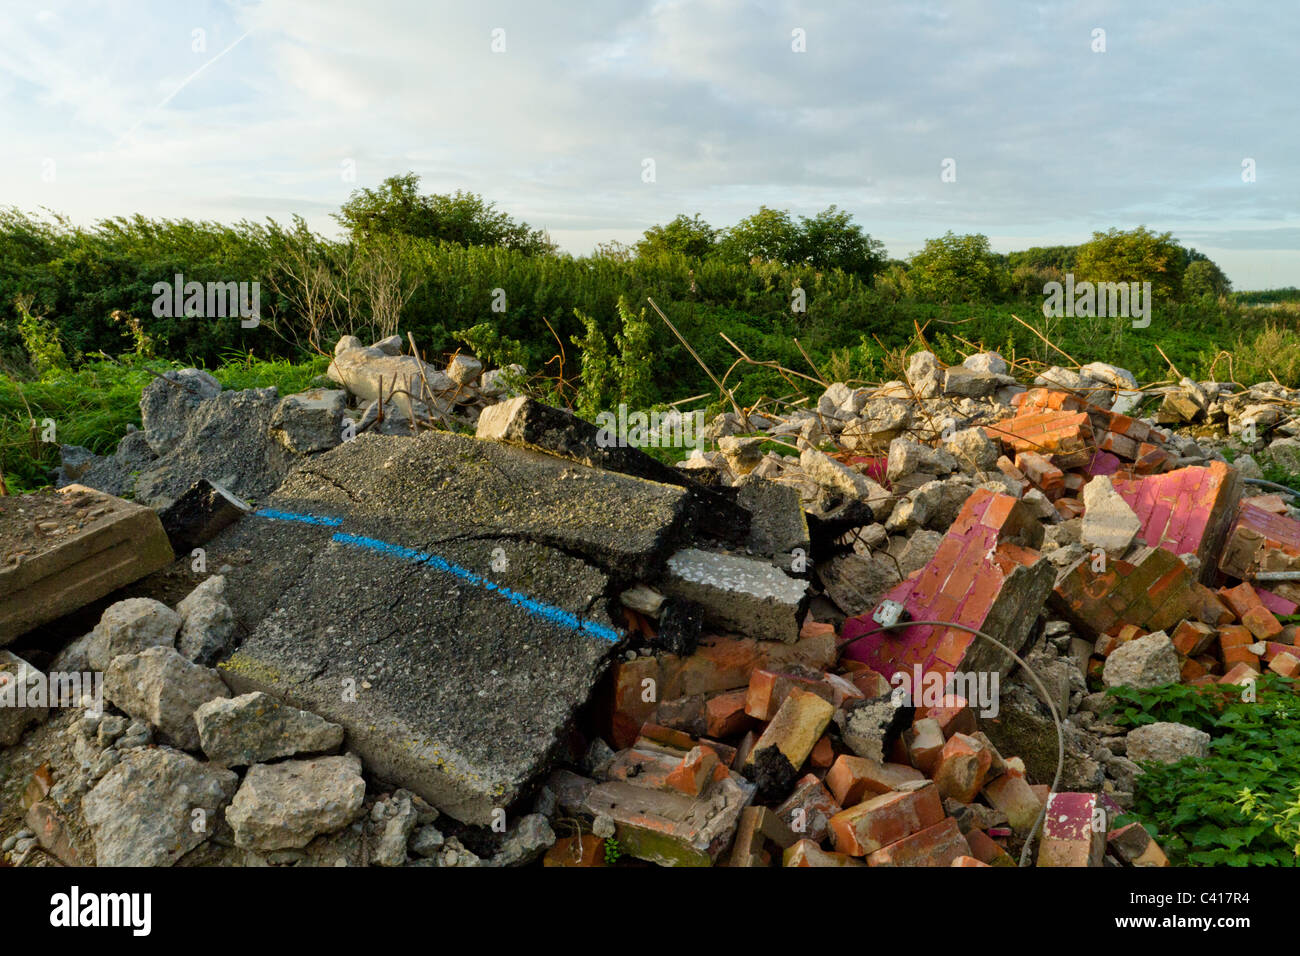 Illegally dumped rubble. Fly tipping of demolition waste in the countryside, Nottinghamshire, England, UK Stock Photo